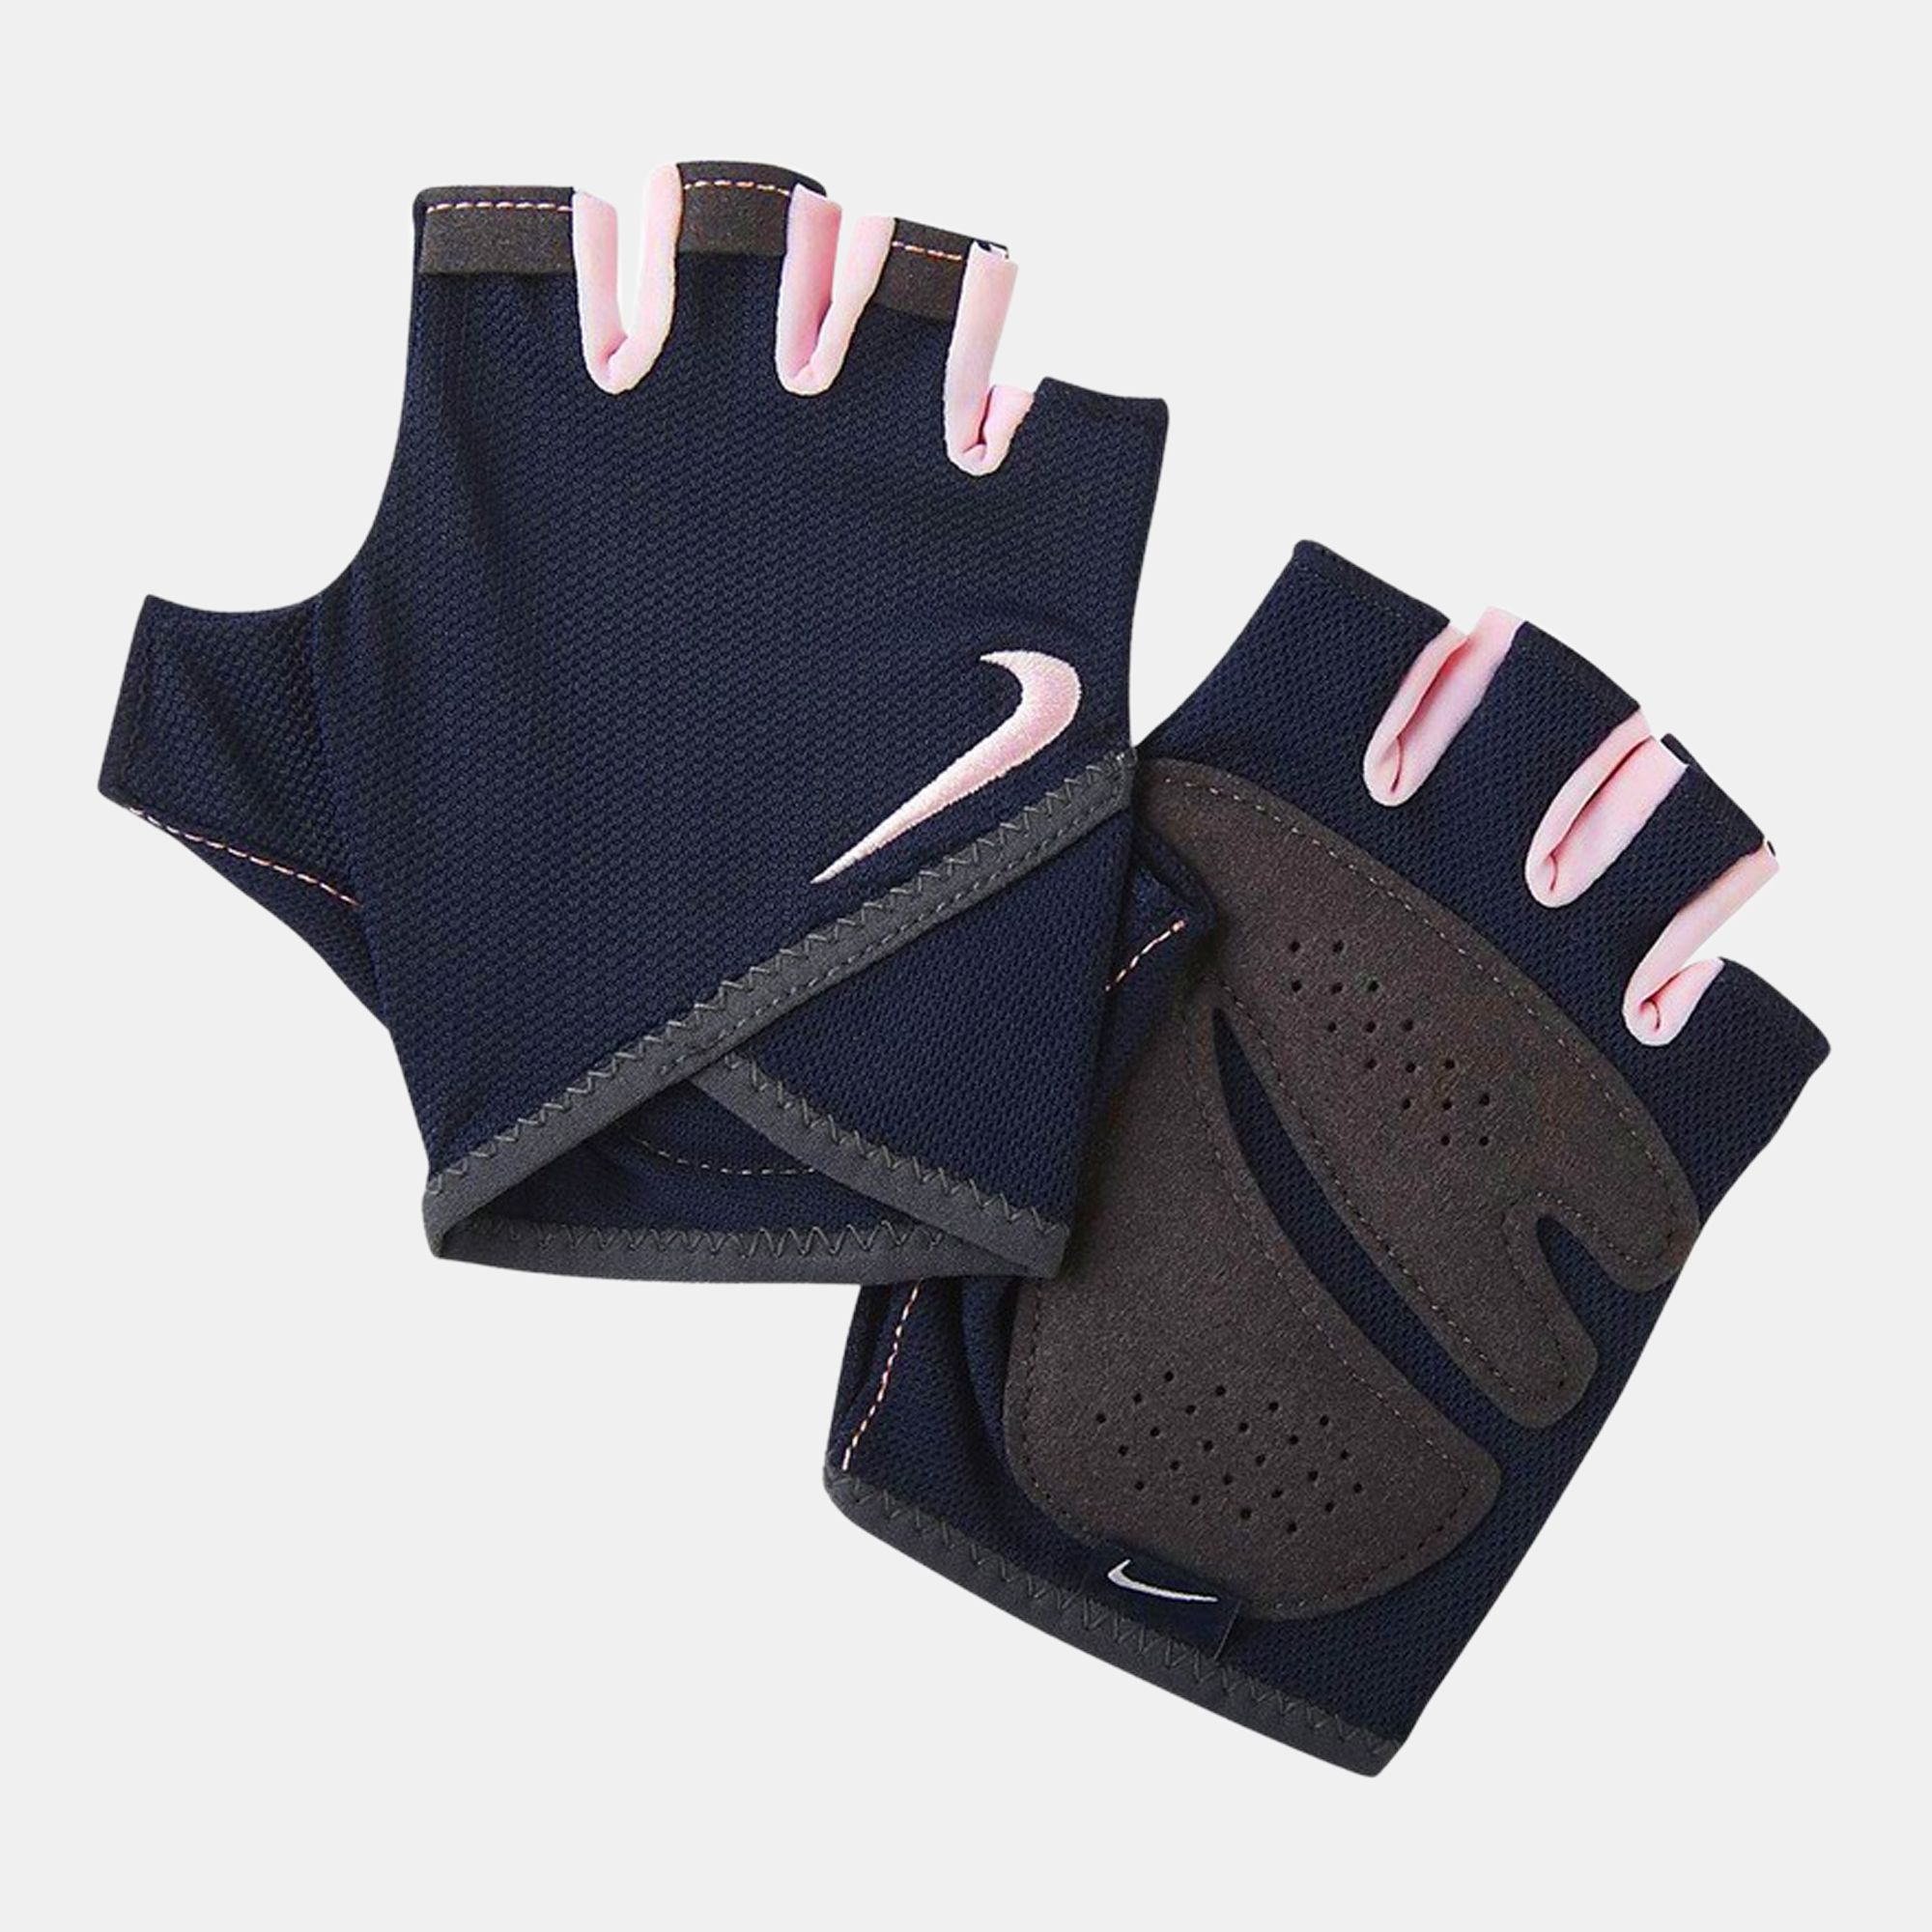 Nike Women's Essential Fitness Gym Gloves